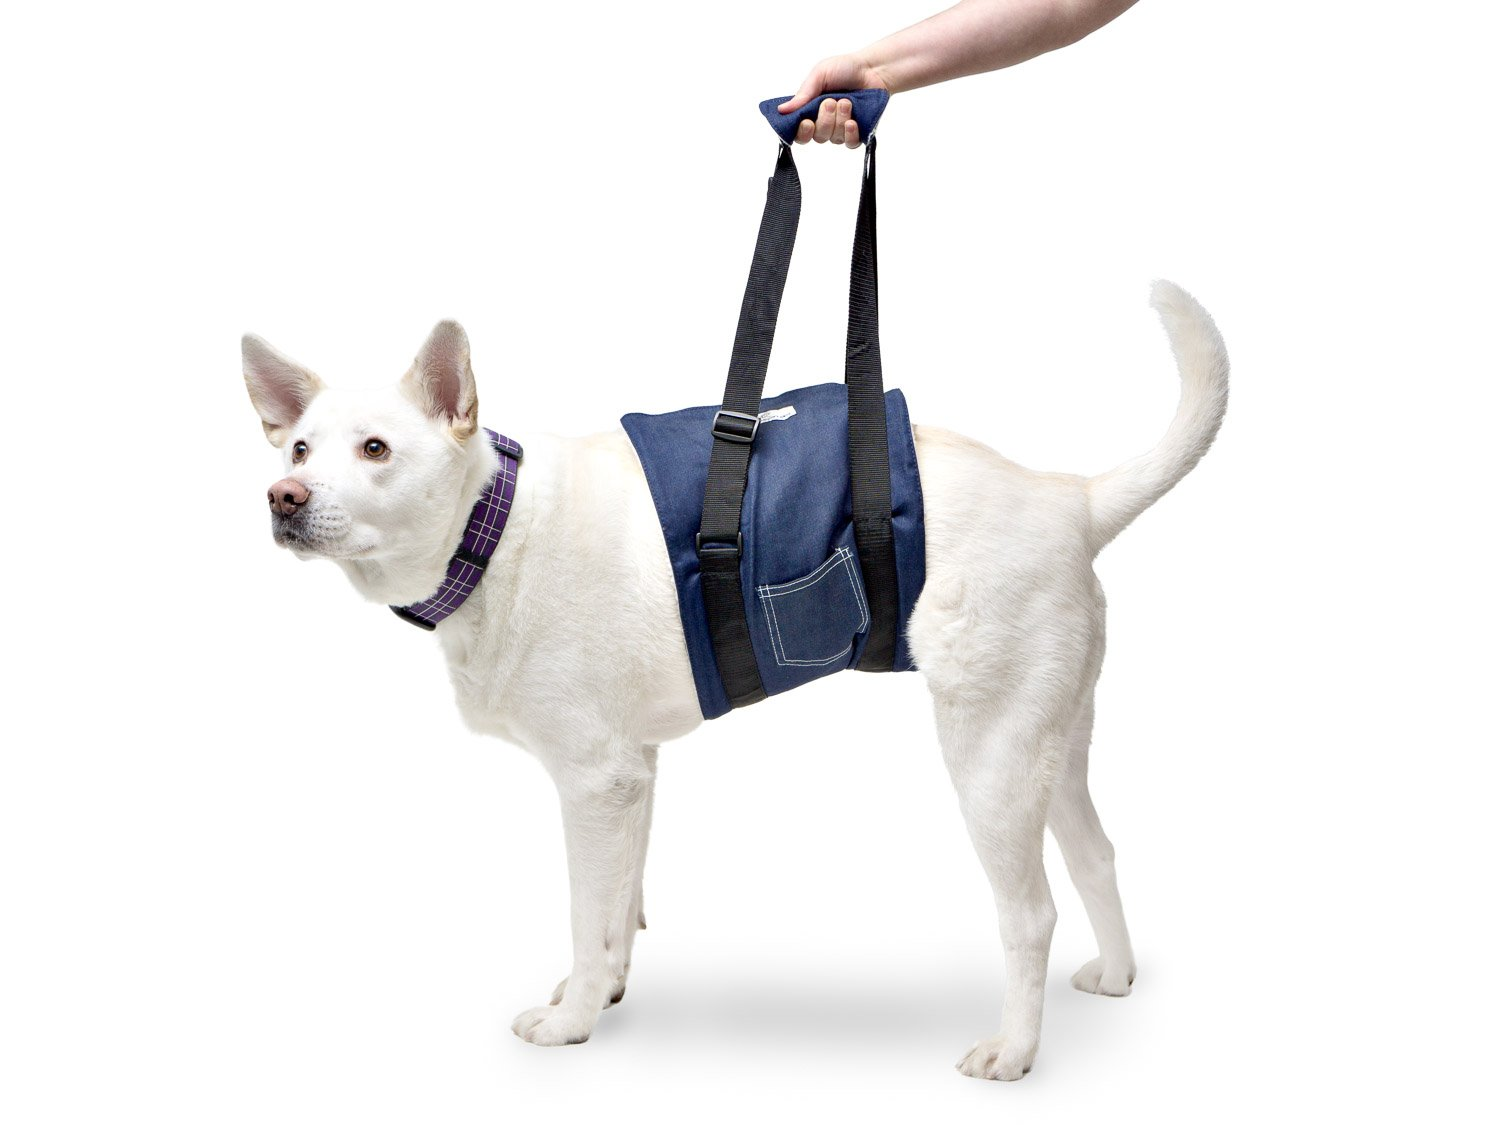 Walkin' Dog Support & Rehabilitation Harness/Sling by Walkin'